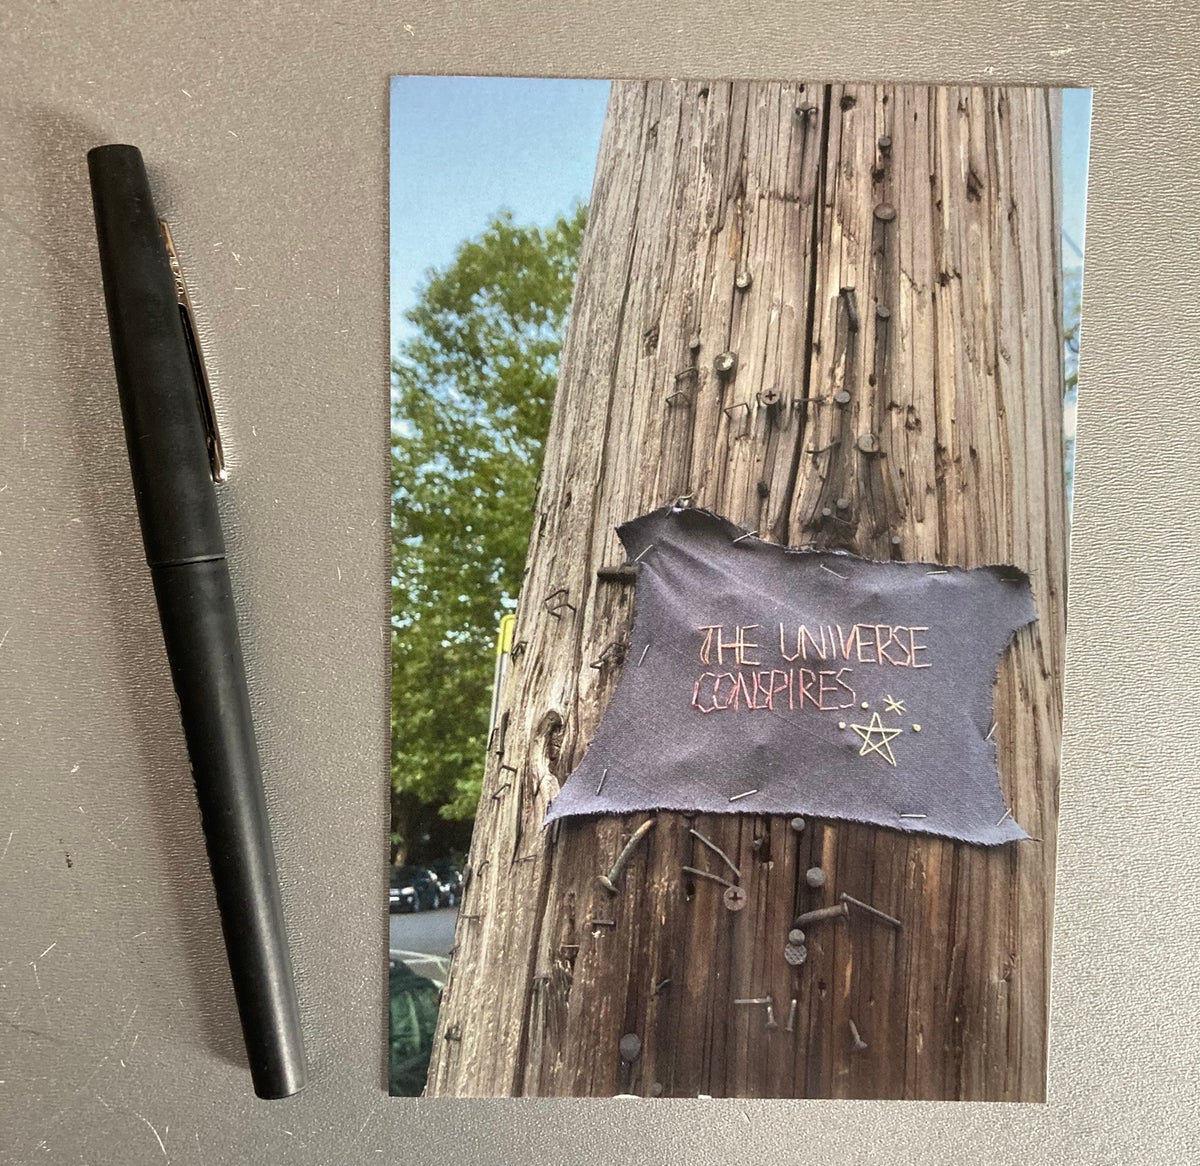 Image of Street Art Project Postcards (Group 2)